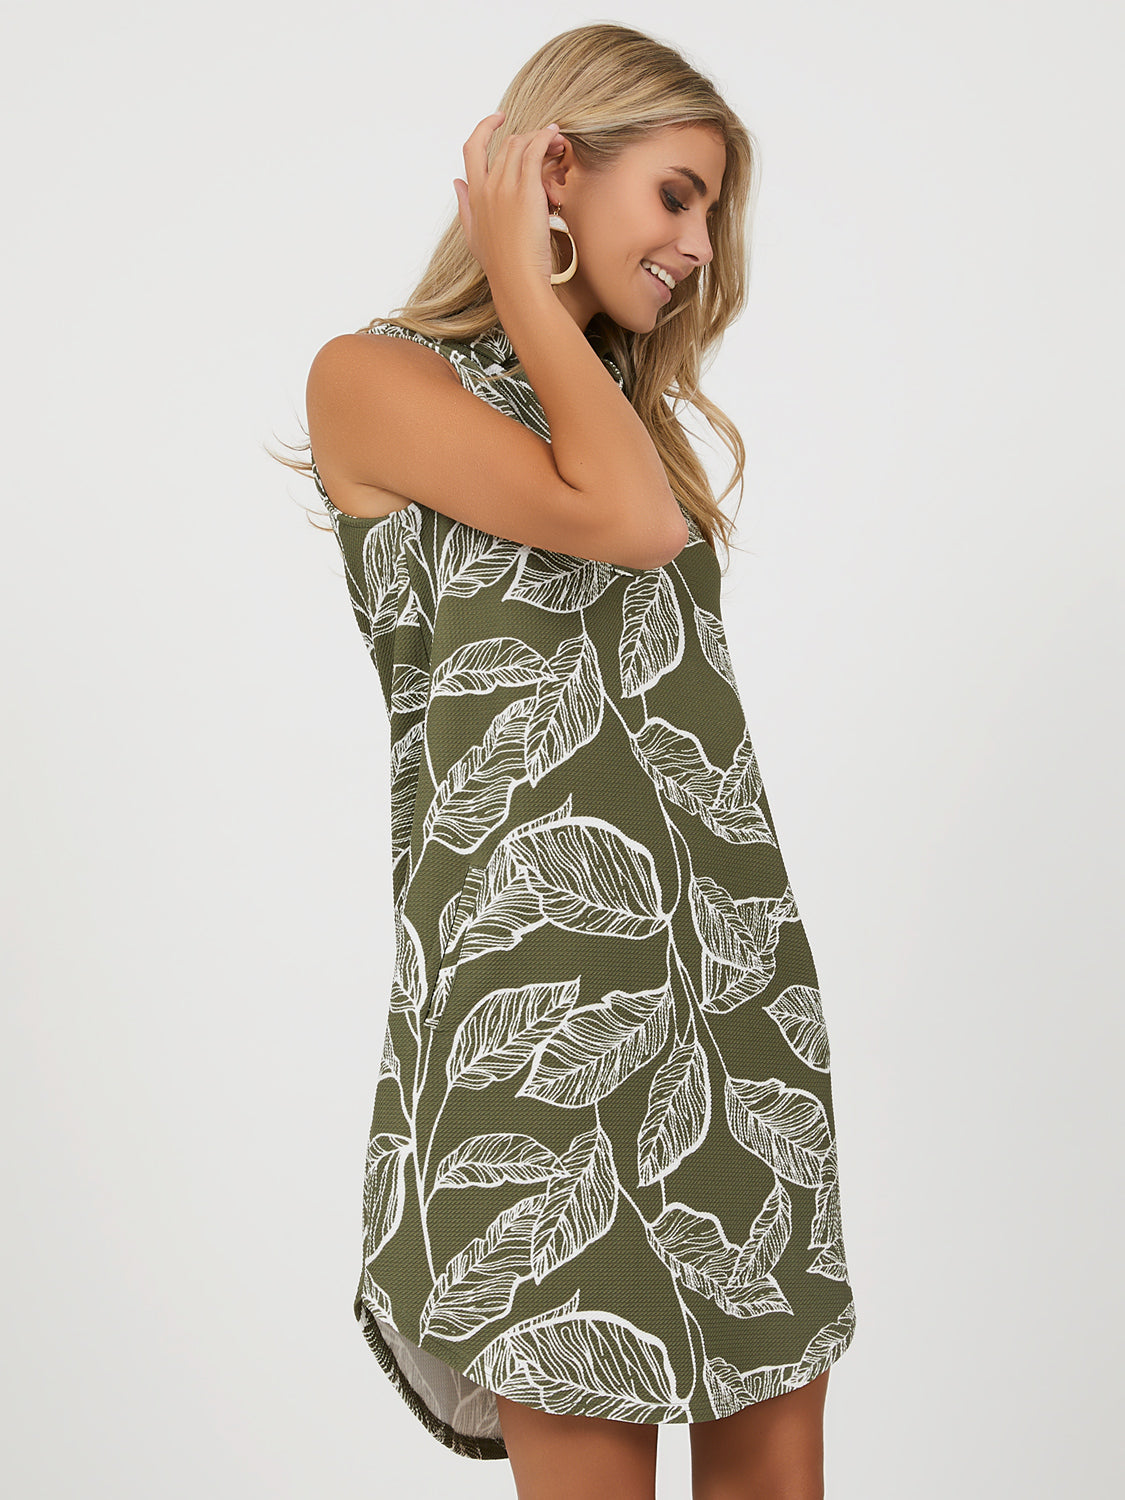 Sleeveless Leaf Print A-line Dress